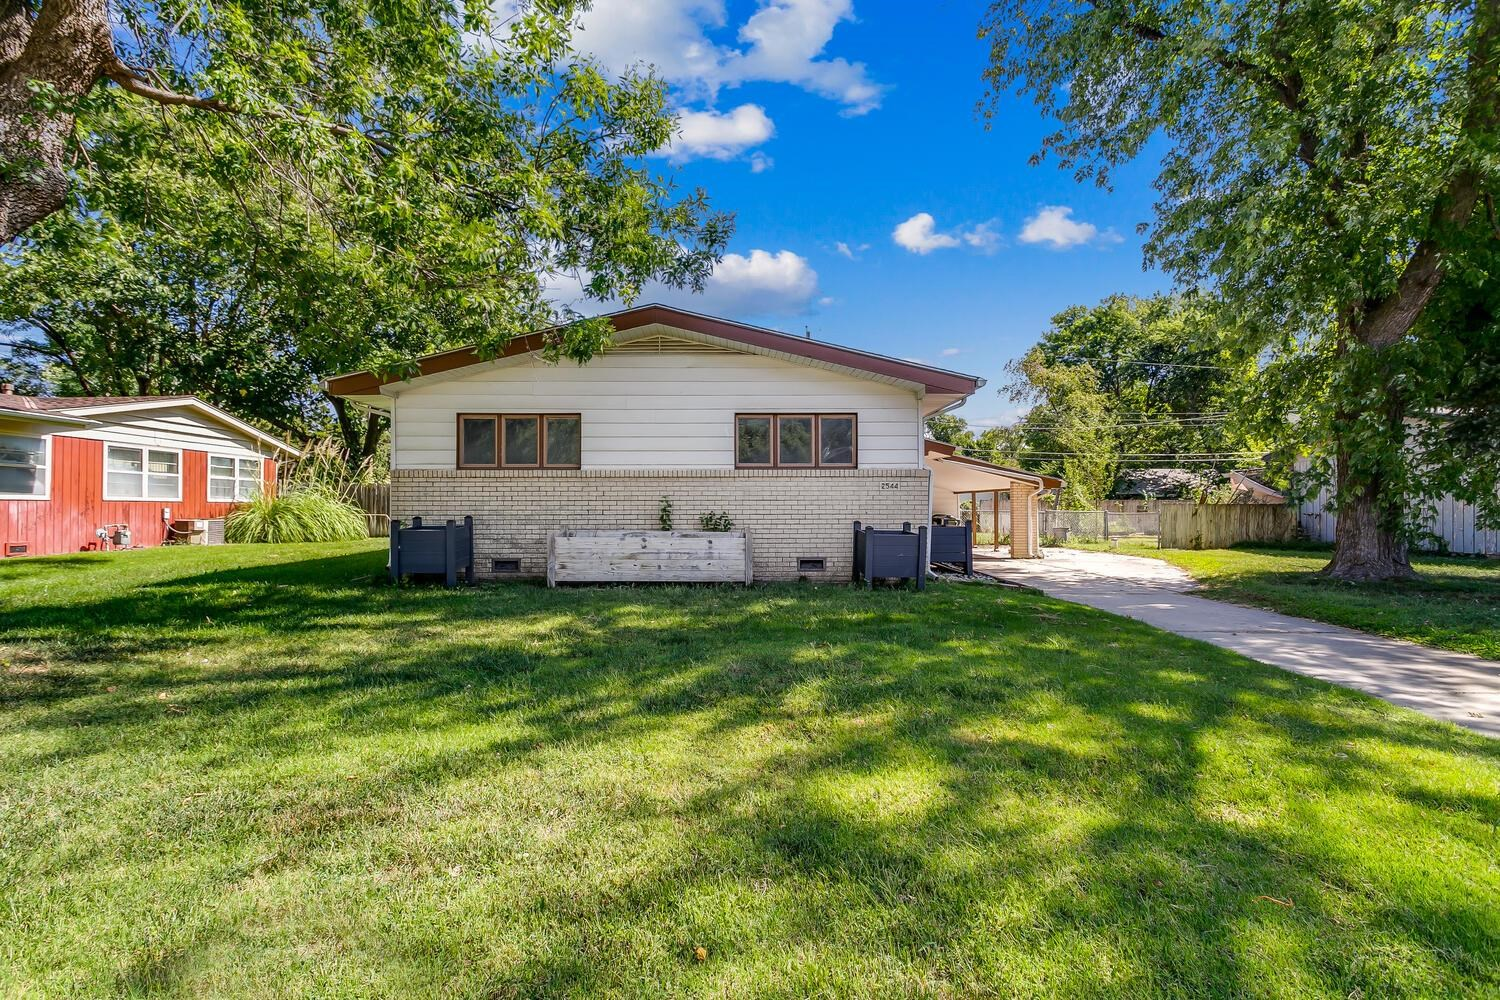 Charming home tucked away on a dead end street. Home has beautilful refinished wood floors, neutral